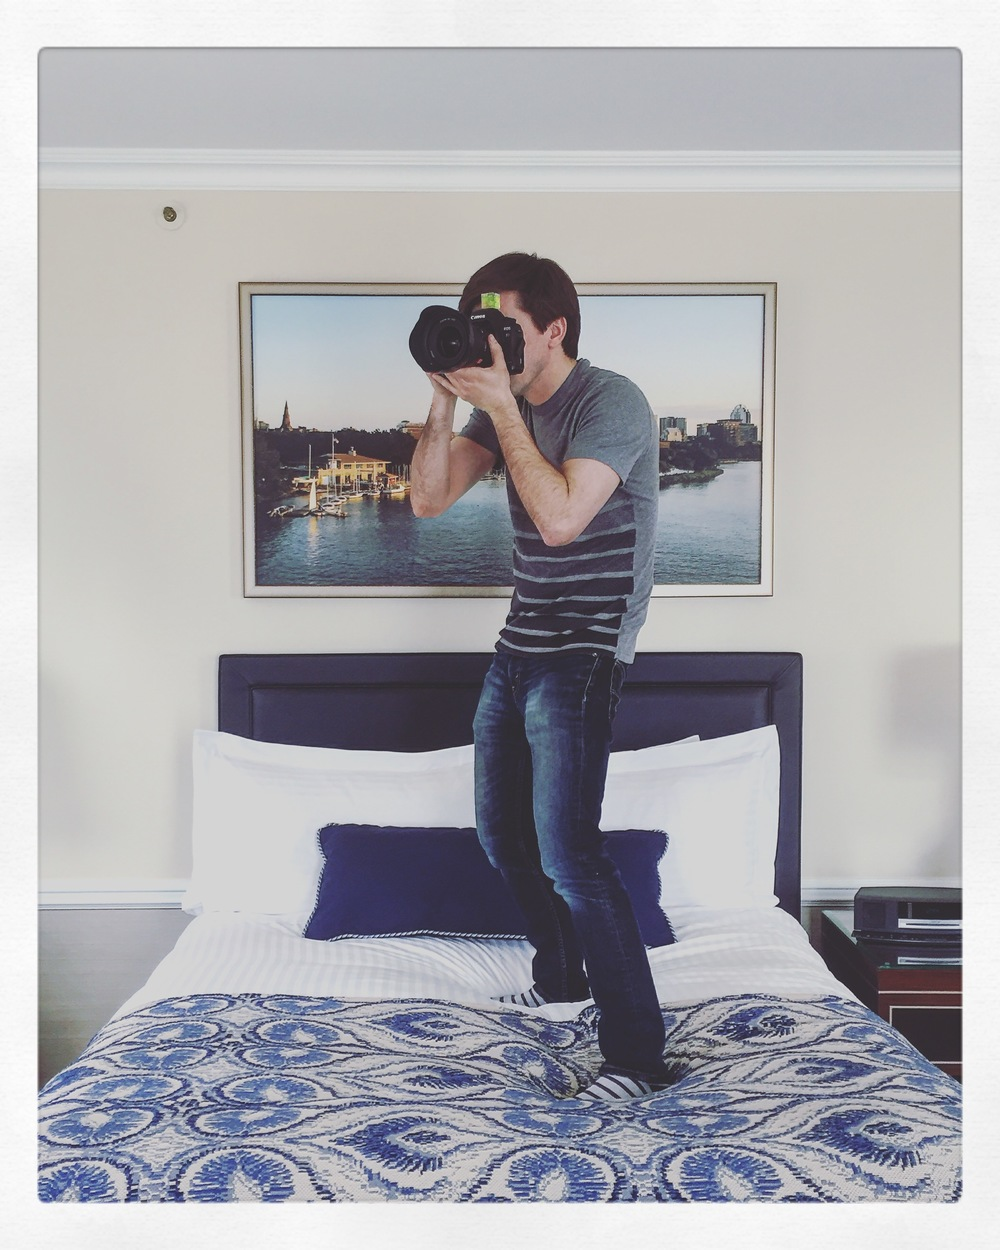 Sometimes you've gotta jump on the bed to get the shot.